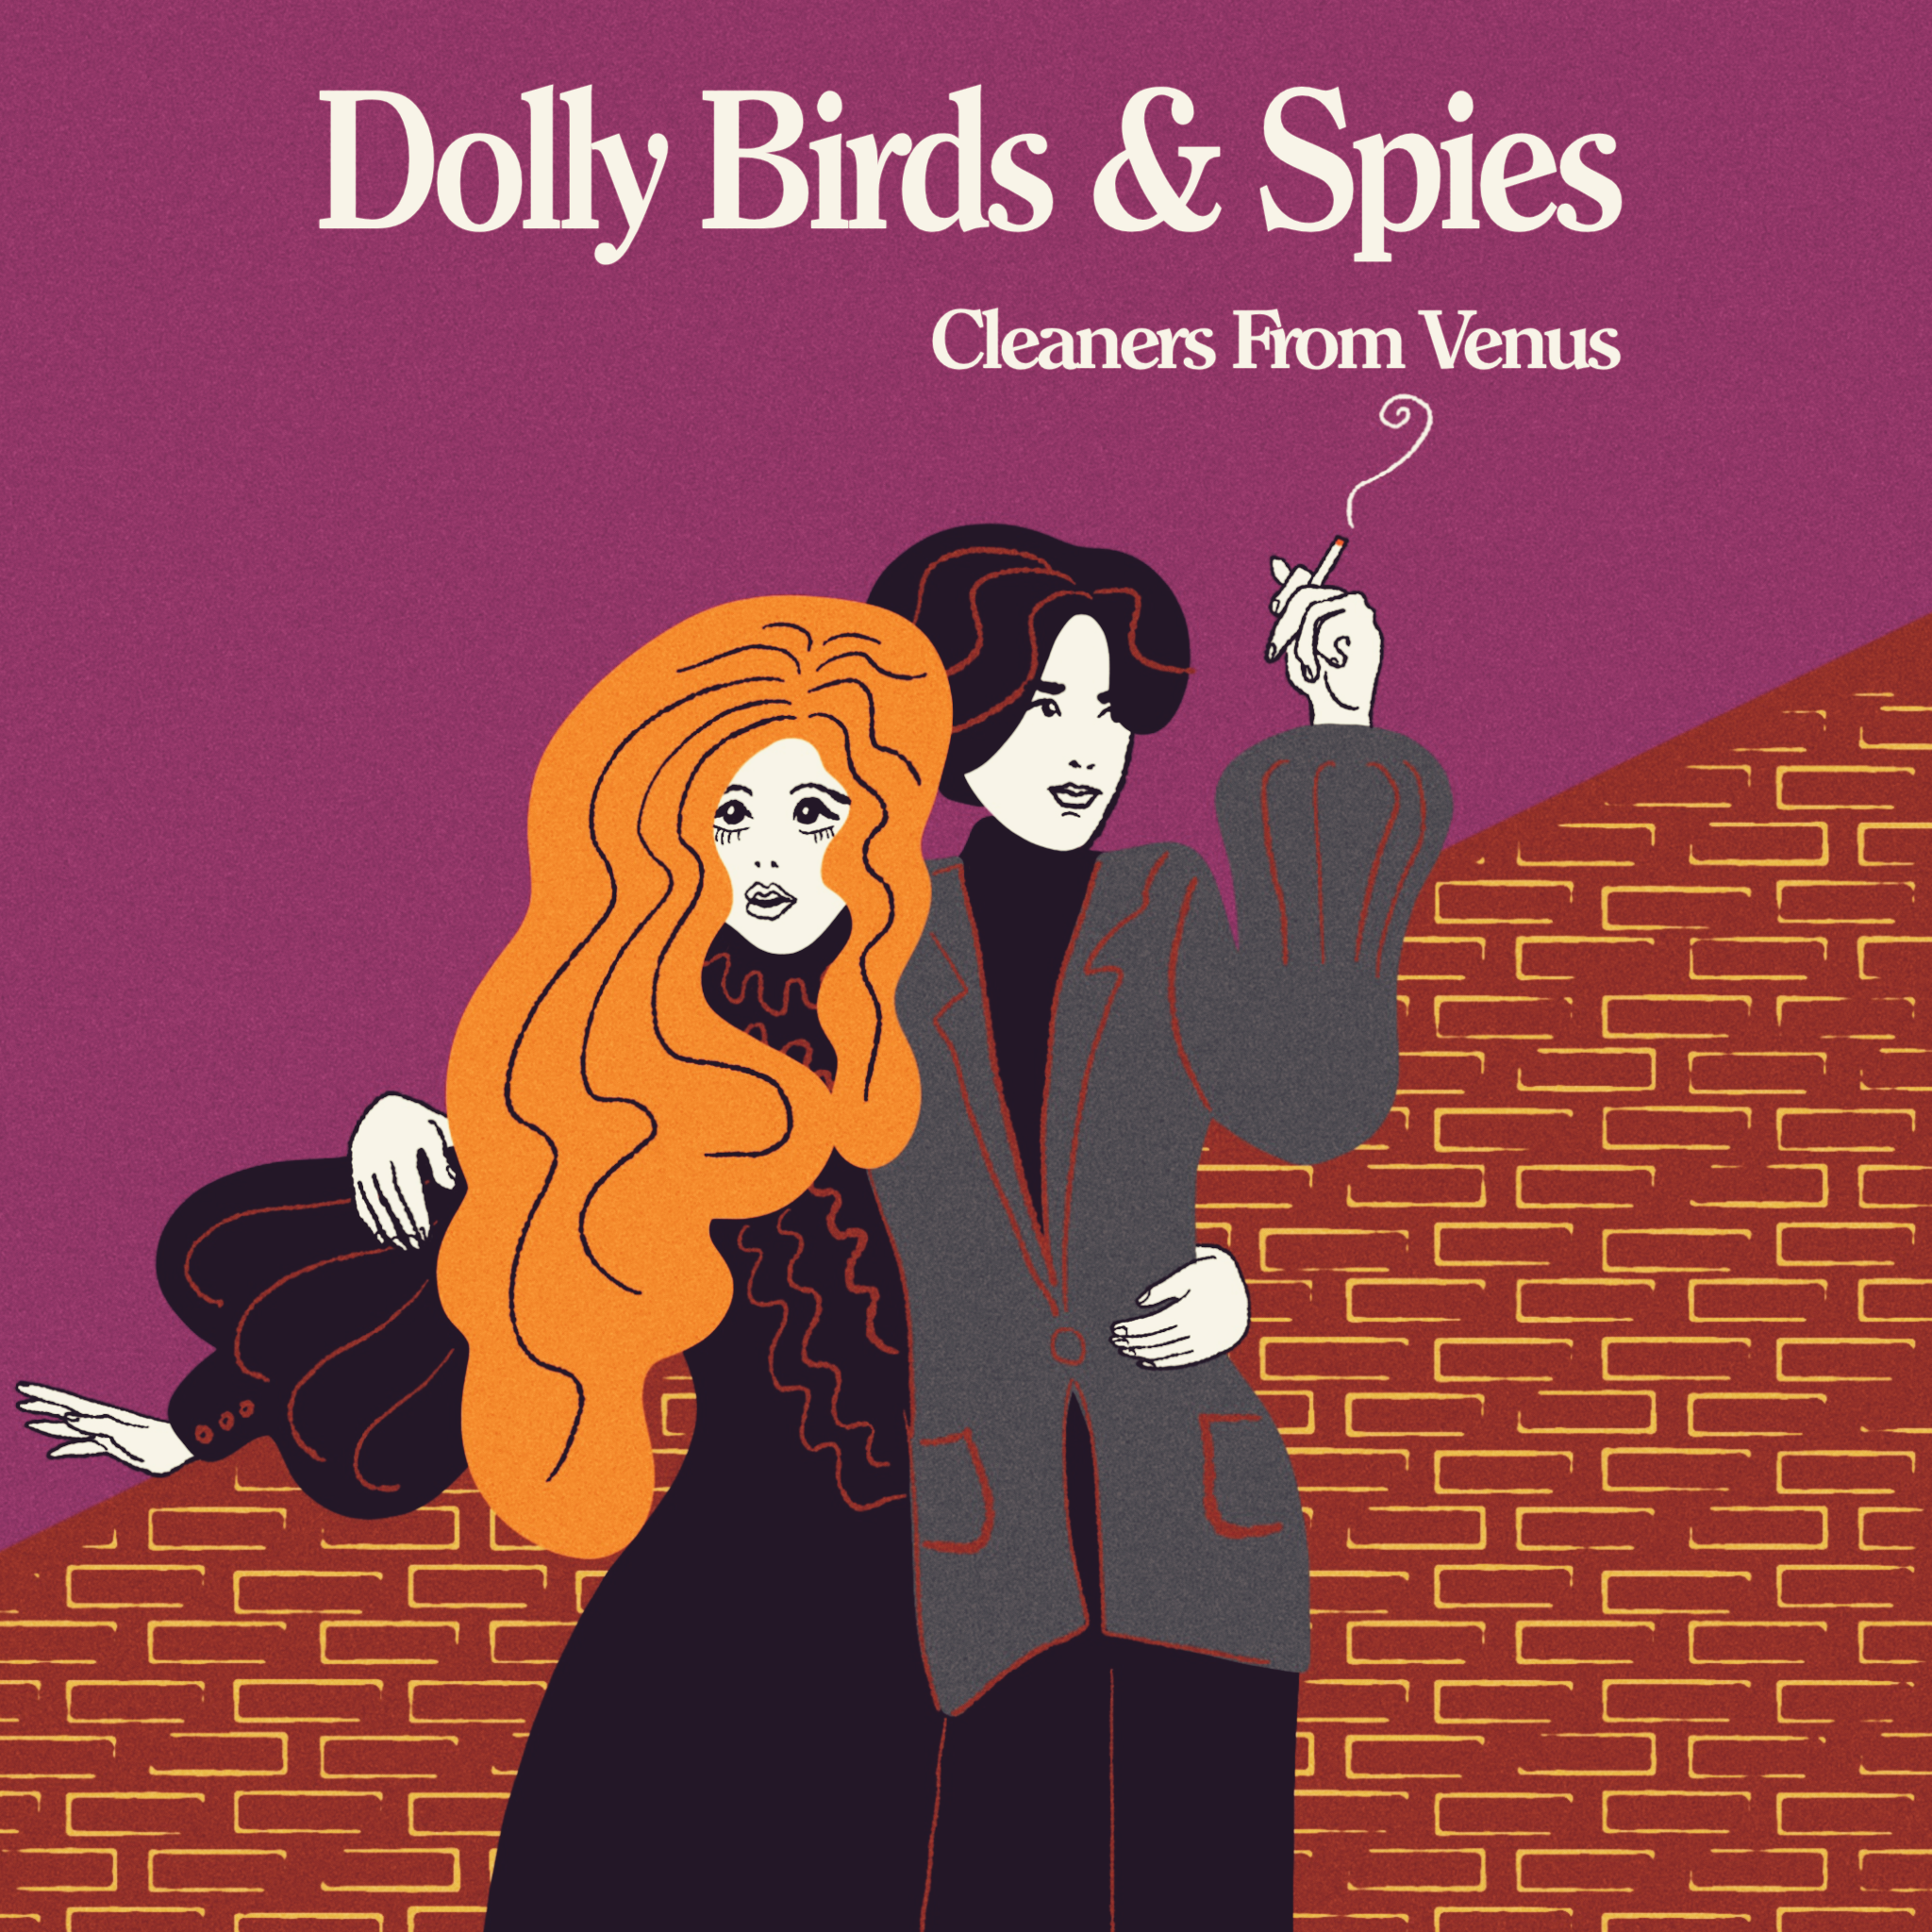 "The Cleaners From Venus Release Outstanding New Album, ""Dolly Birds & Spies""."